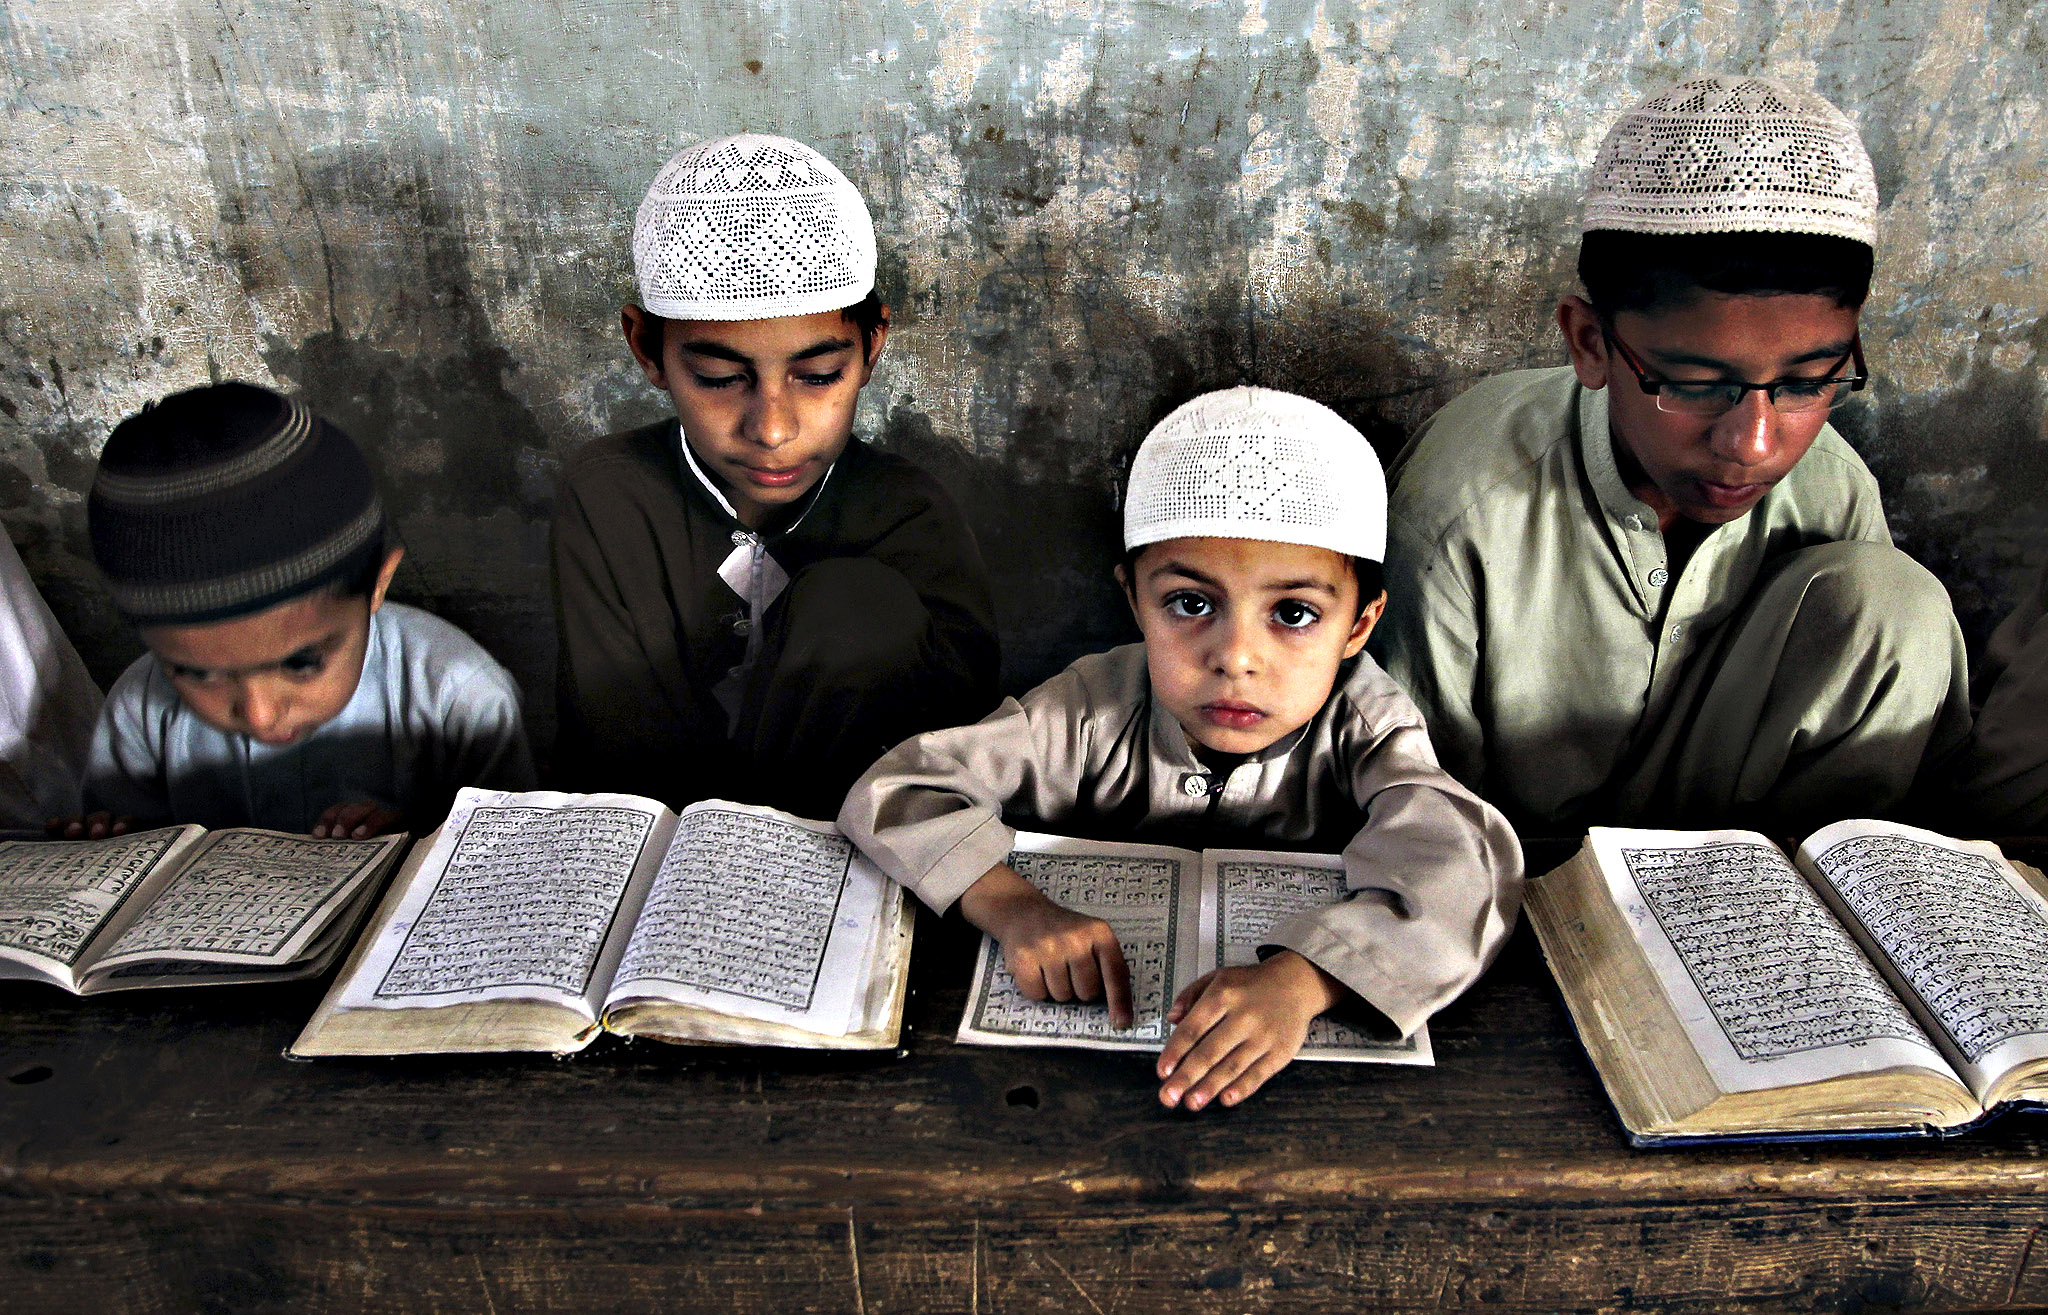 Pakistani Muslim students attend a religious madrassa, or school, to learn the Quran, in Karachi, Pakistan, Wednesday, March 4, 2015. Religious schools in Pakistan, most of them in mosques, are the only source of education for thousands of children.